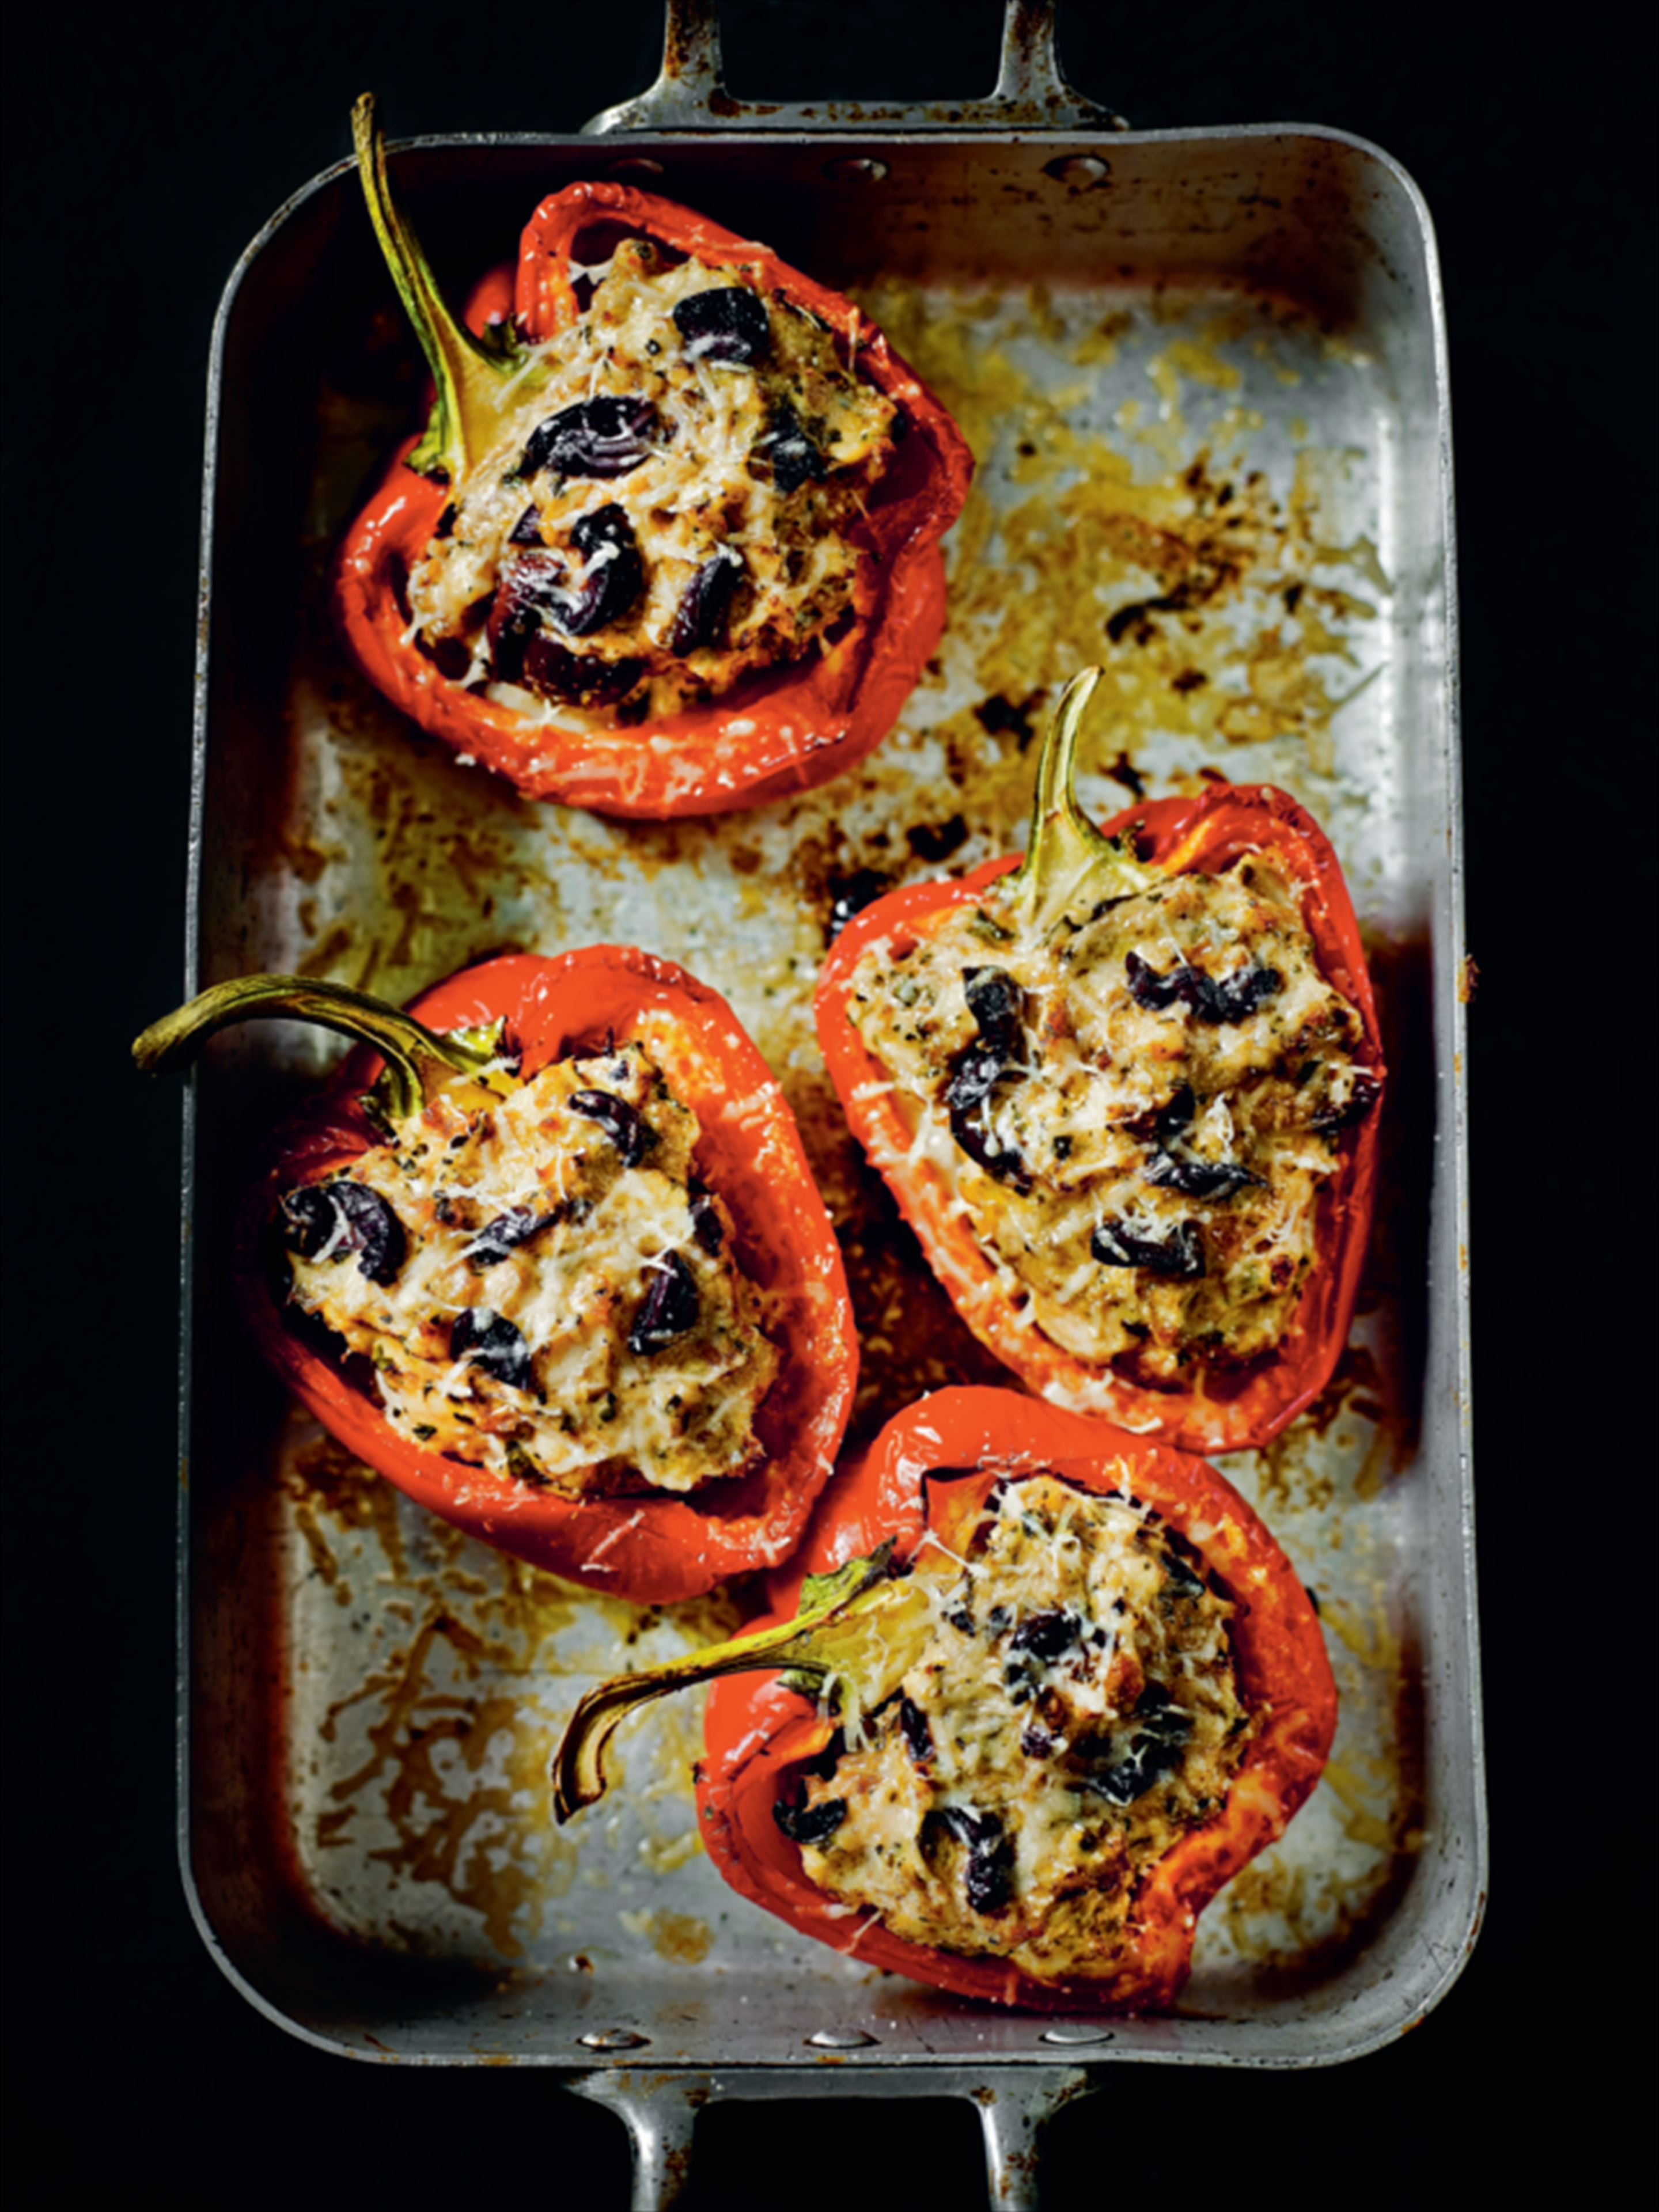 Turkey-stuffed red peppers